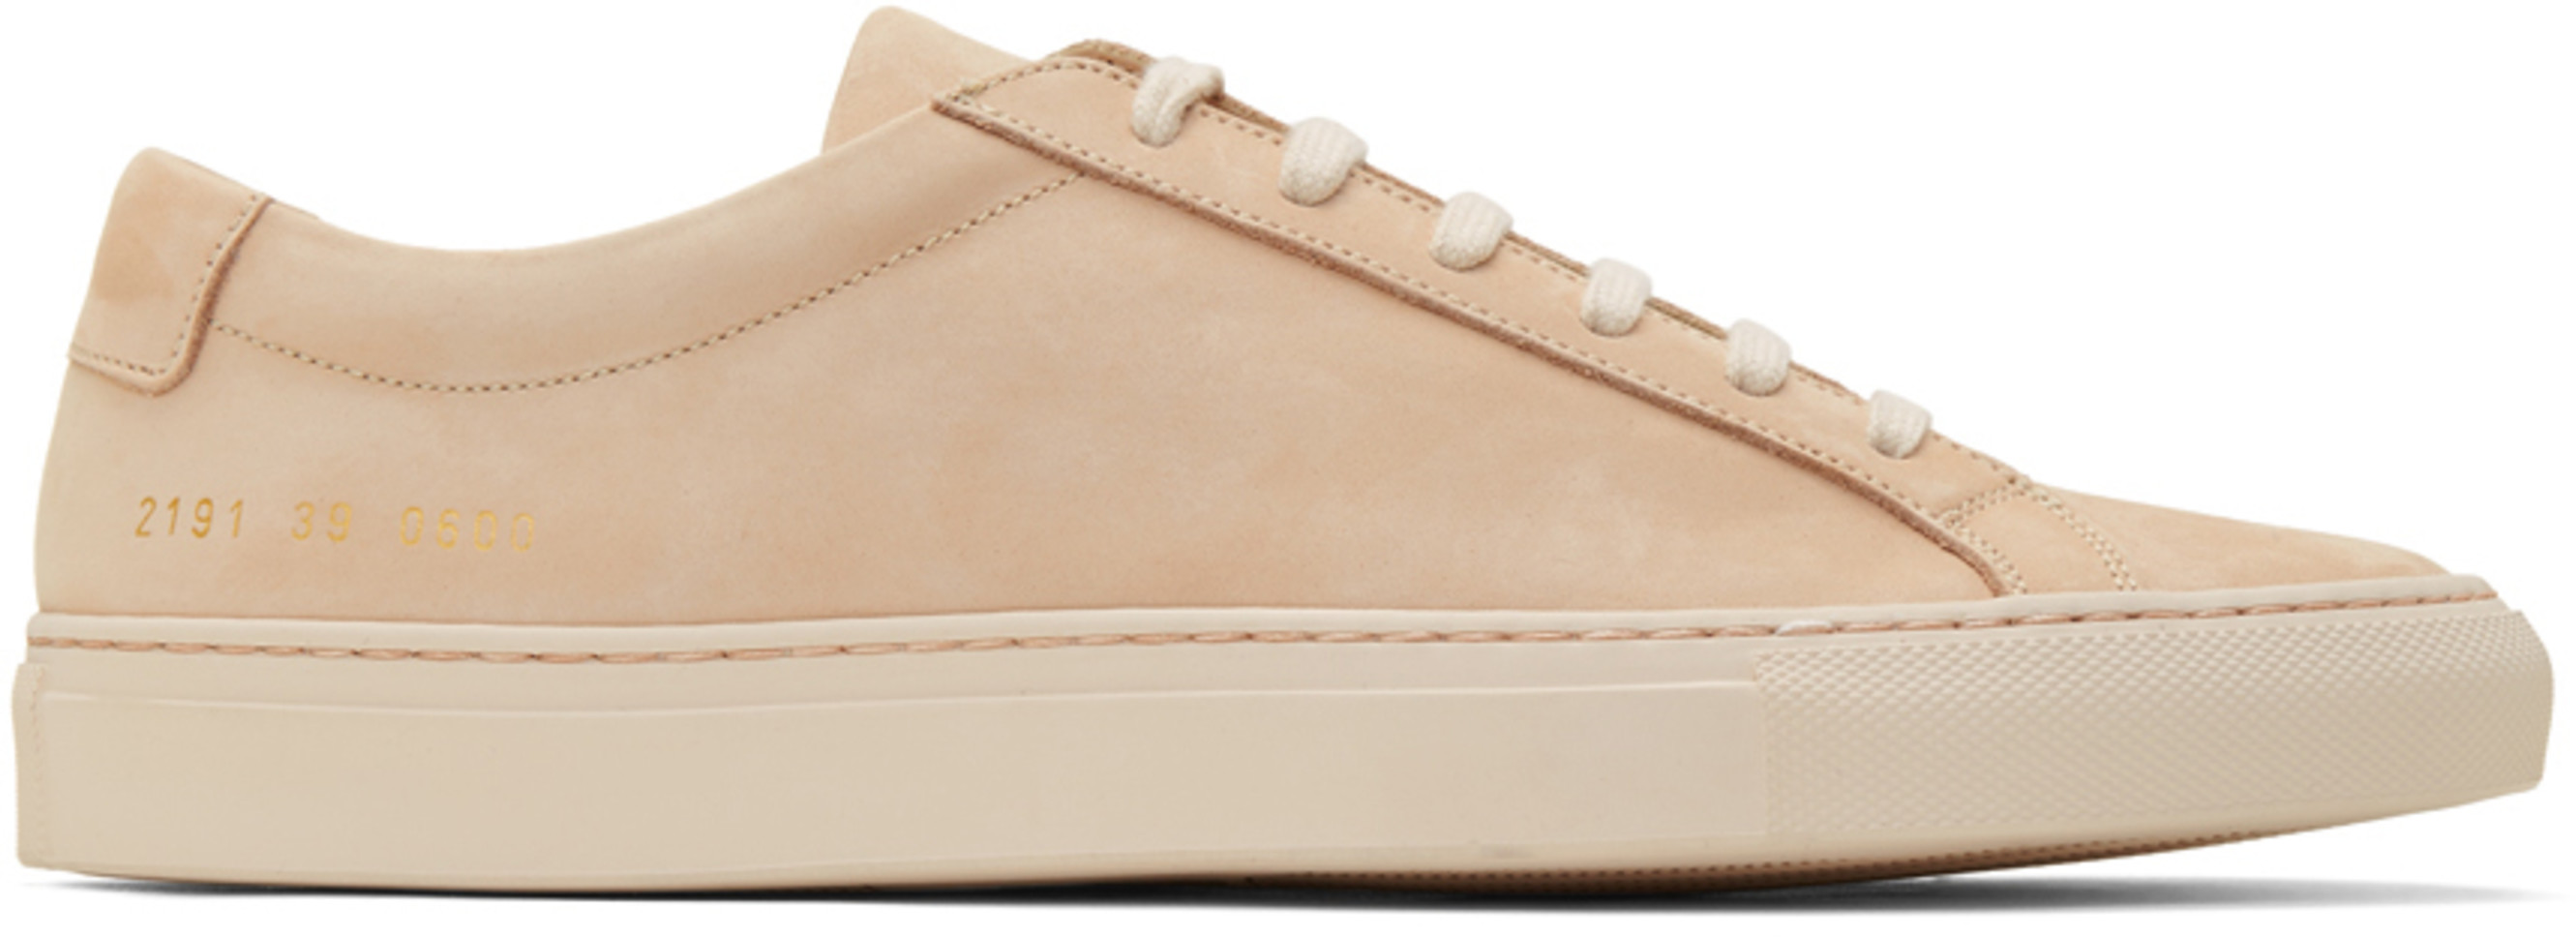 34c3f12f69 Common Projects for Men SS19 Collection | SSENSE Canada